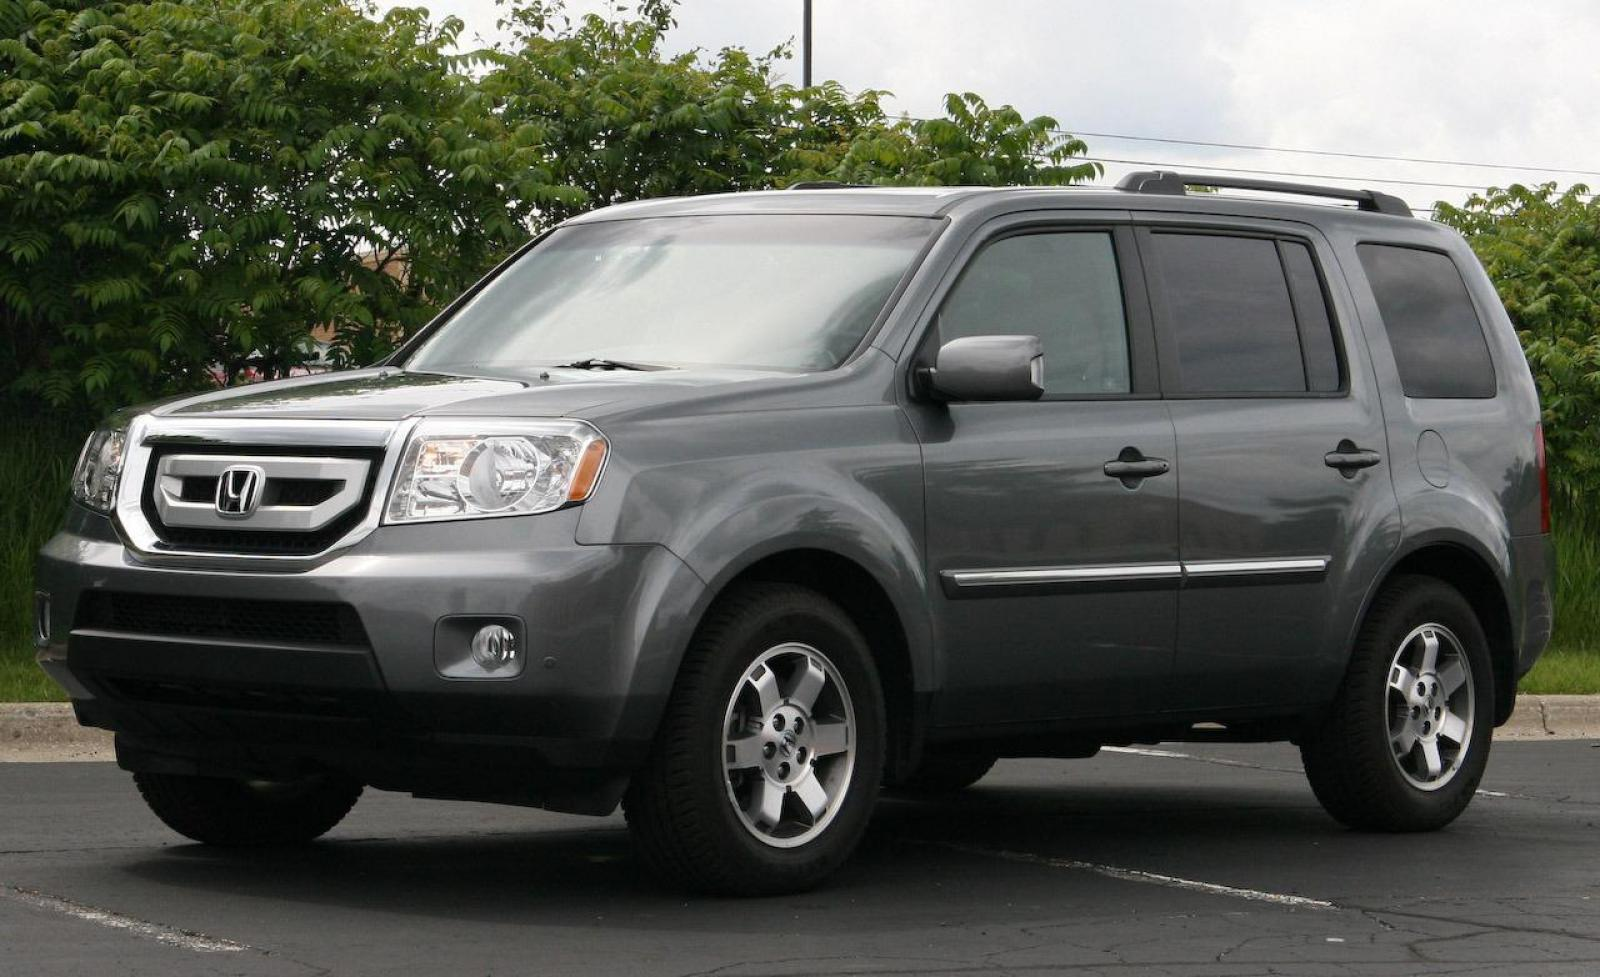 2009 honda pilot information and photos zombiedrive for Honda pilot images